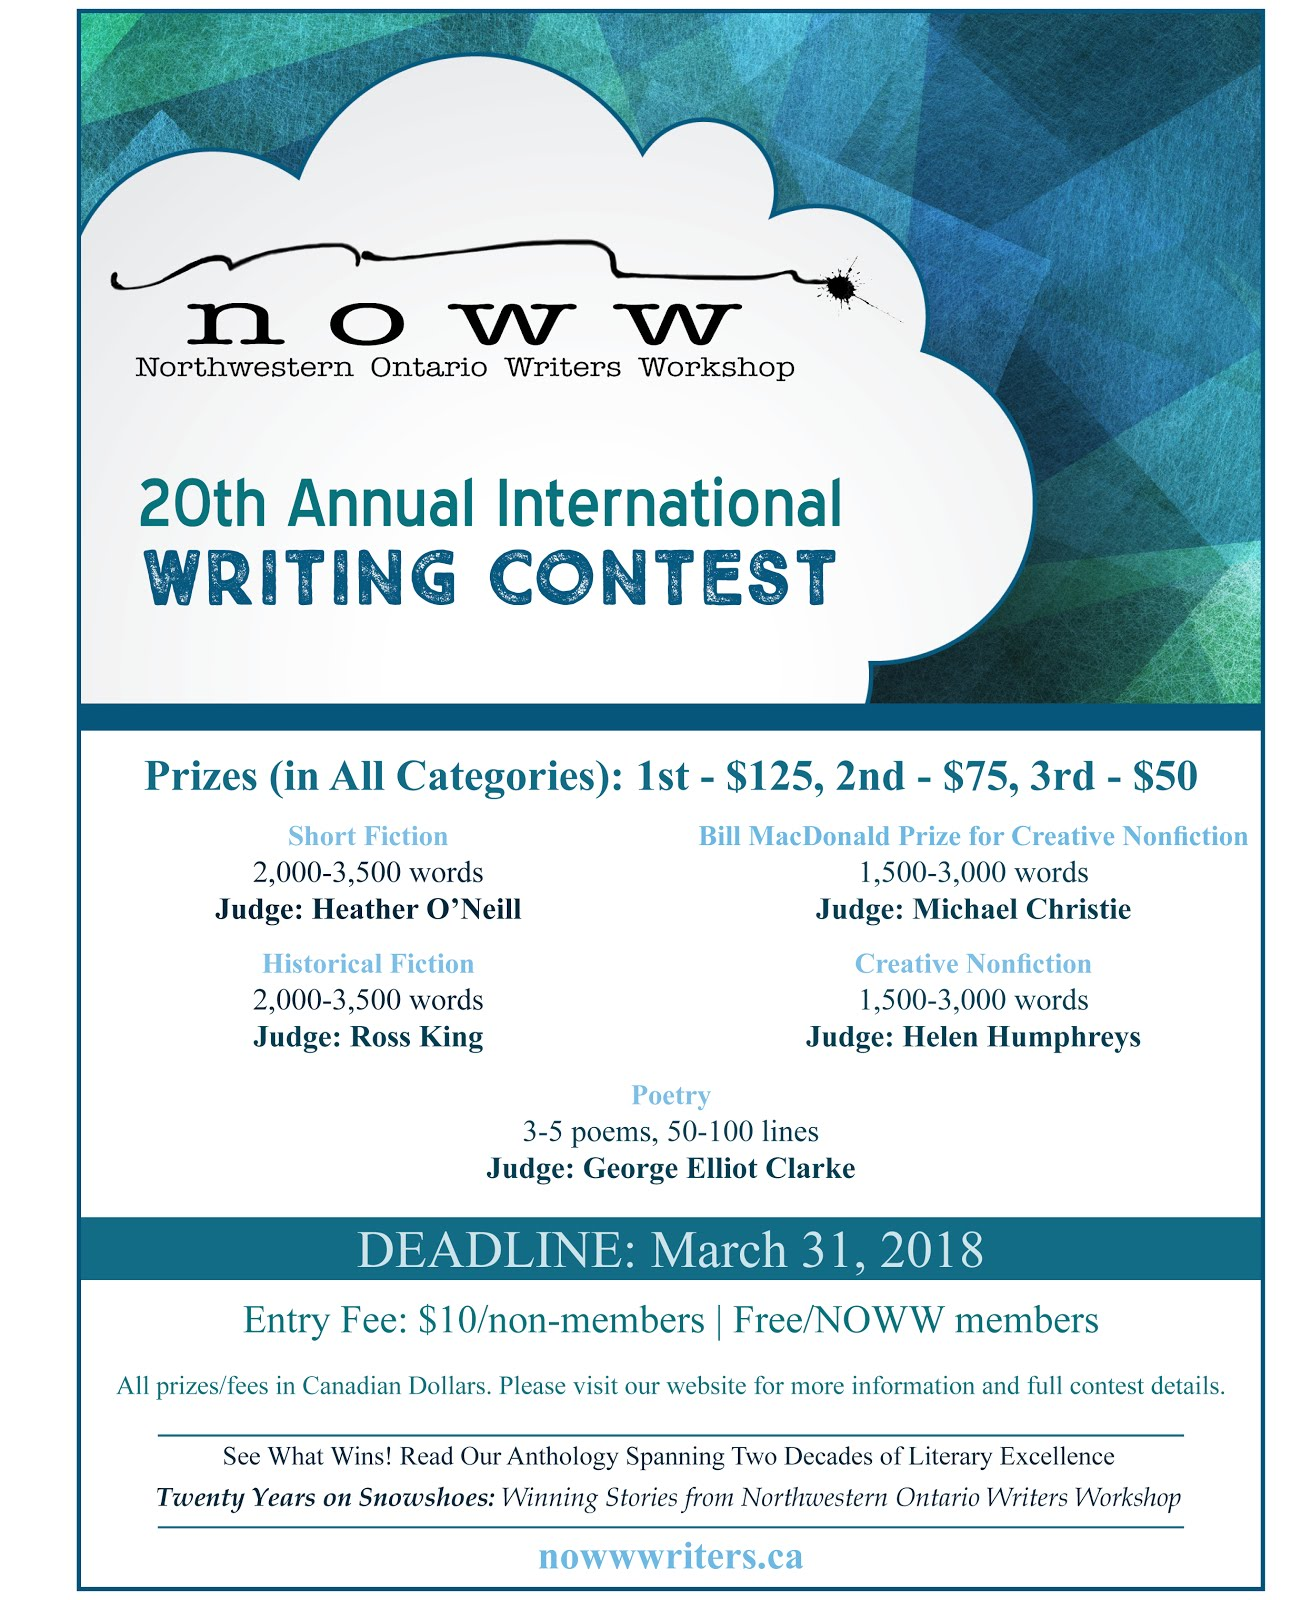 NOWW WRITING CONTEST